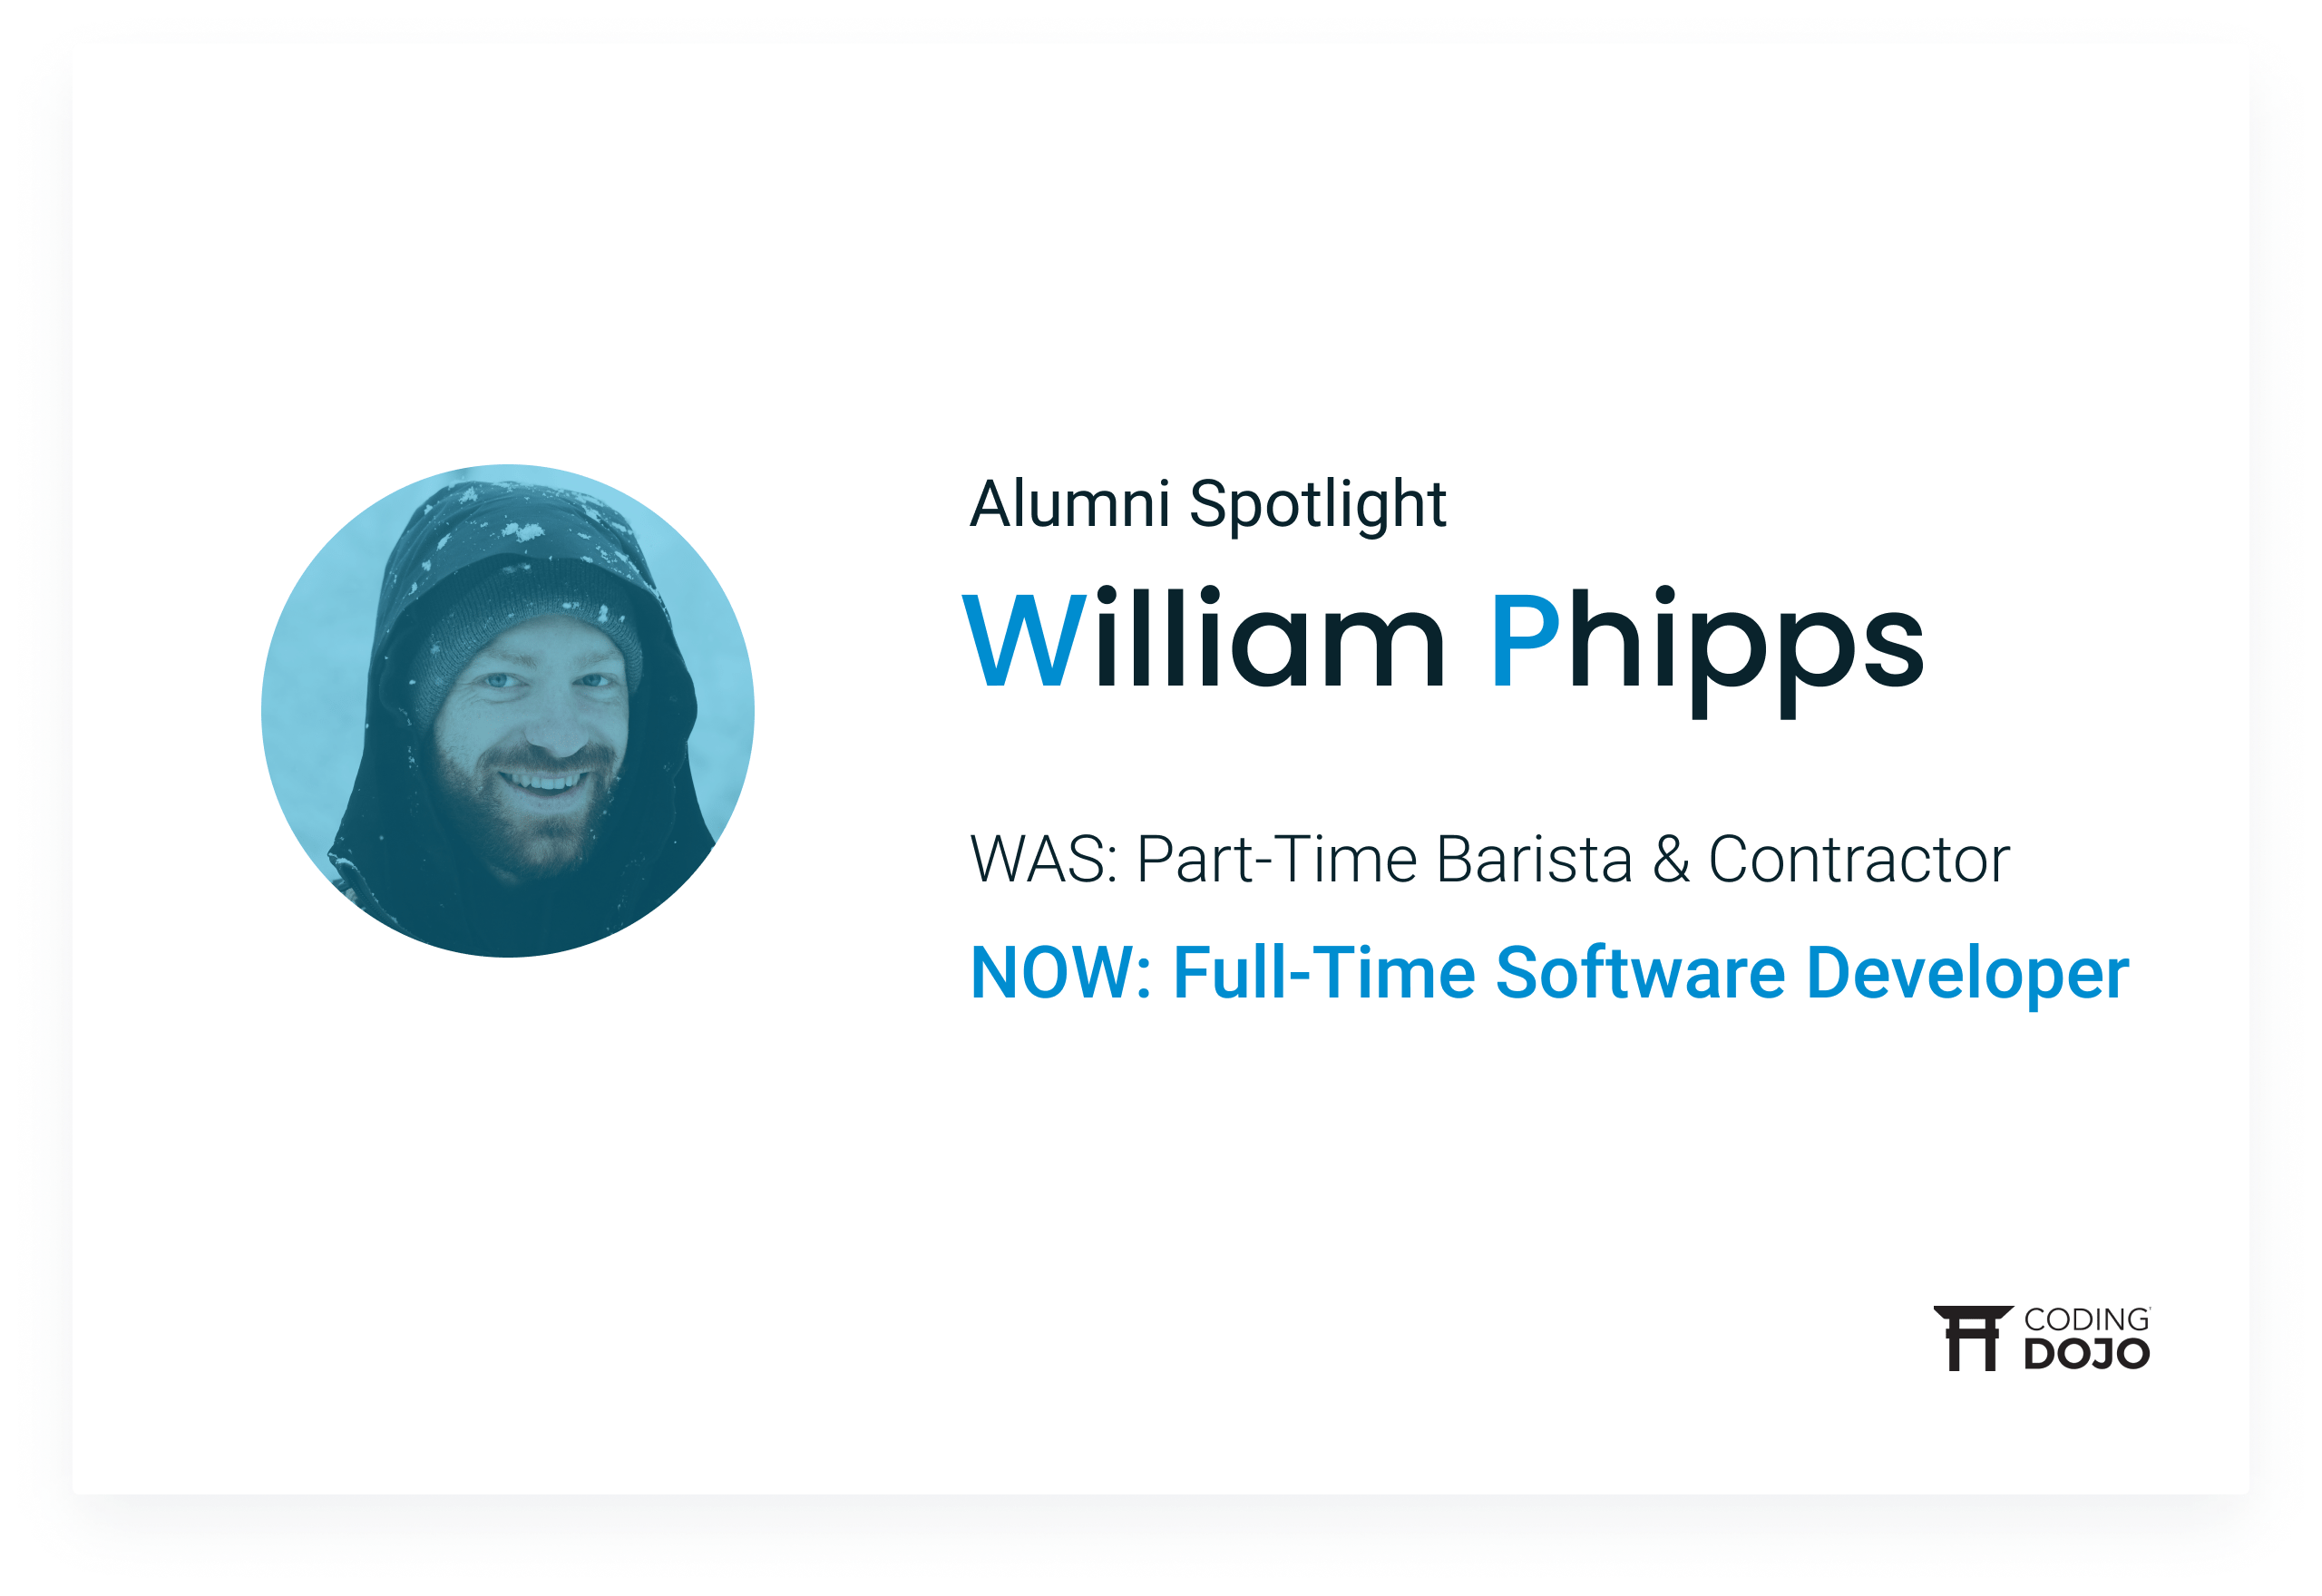 From Making Coffee to Crafting Code | The Story of Tulsa Alumni William Phipps Taking a Leap & Landing a New Career